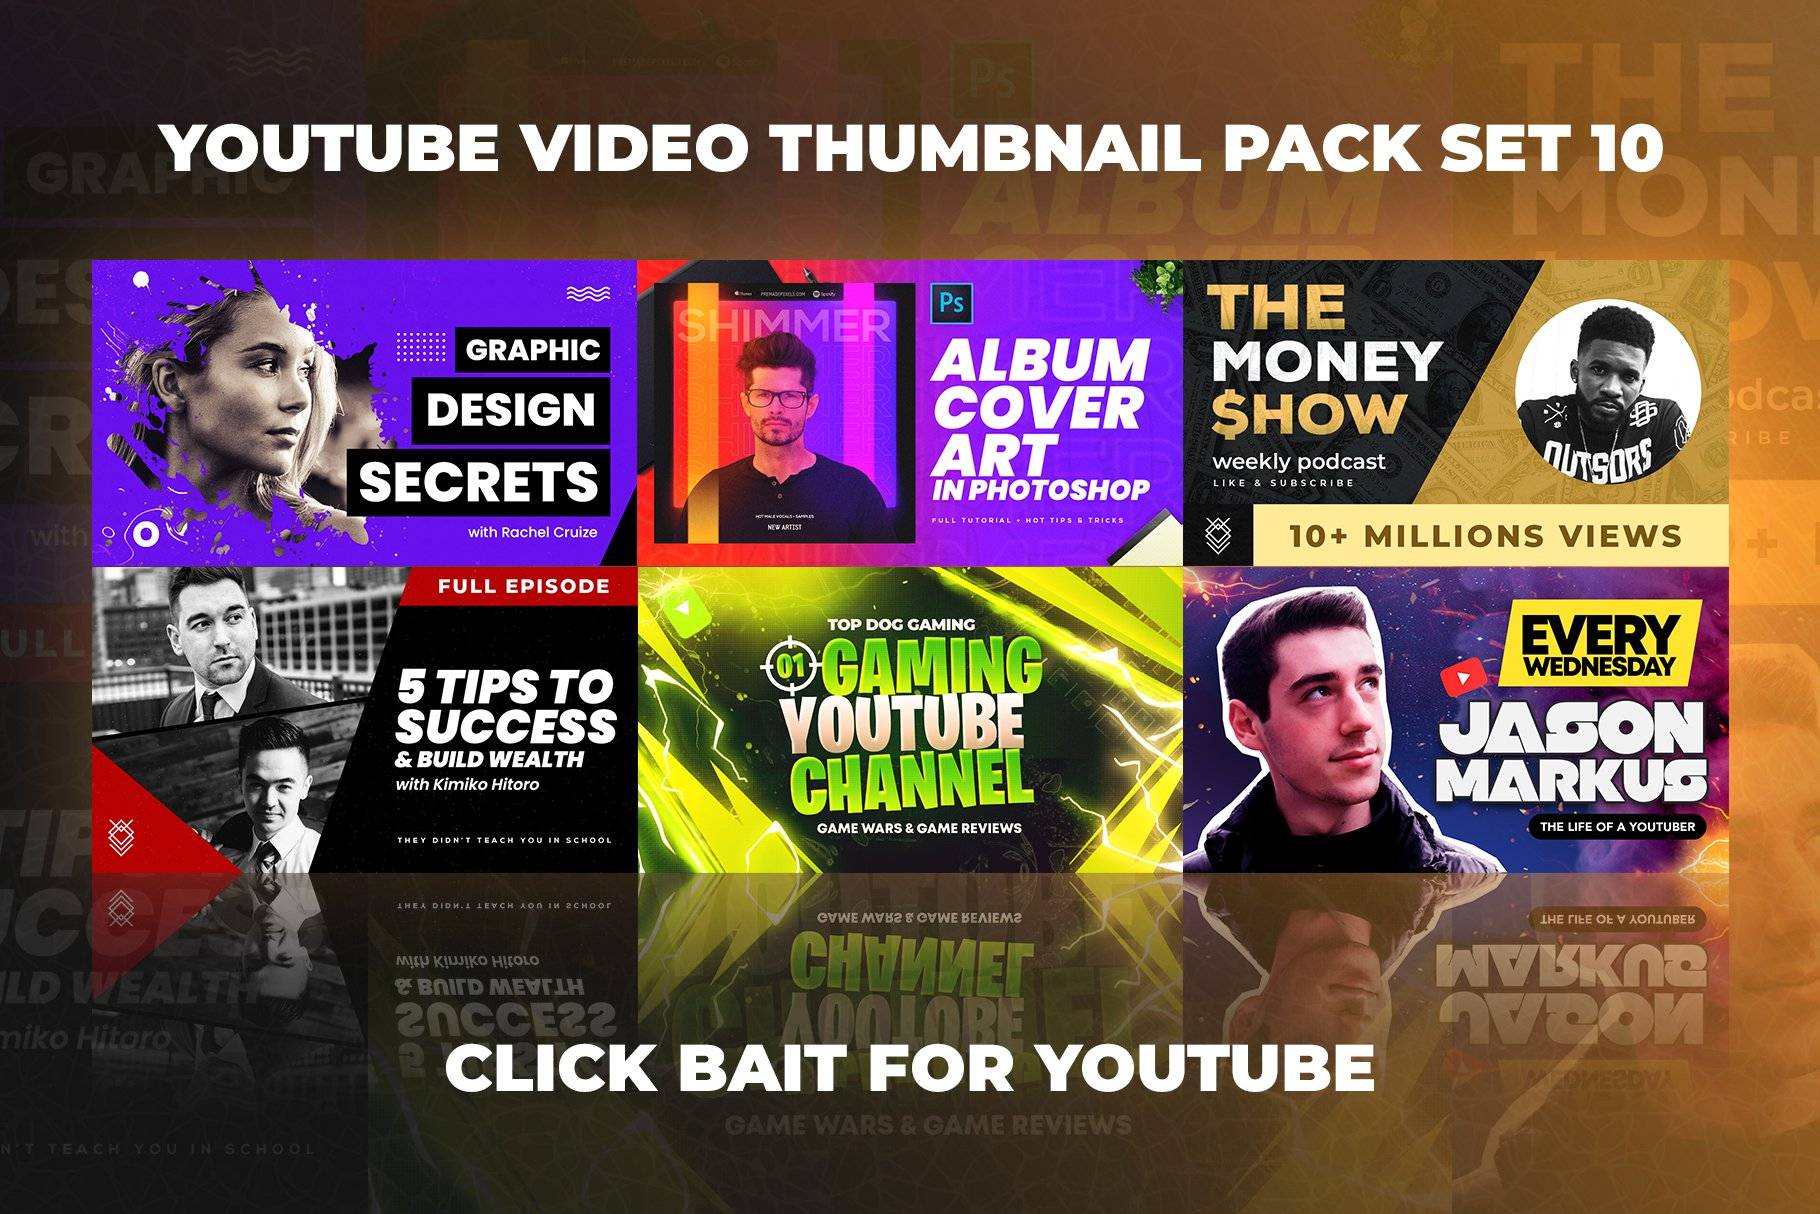 how to see youtube thumbnail